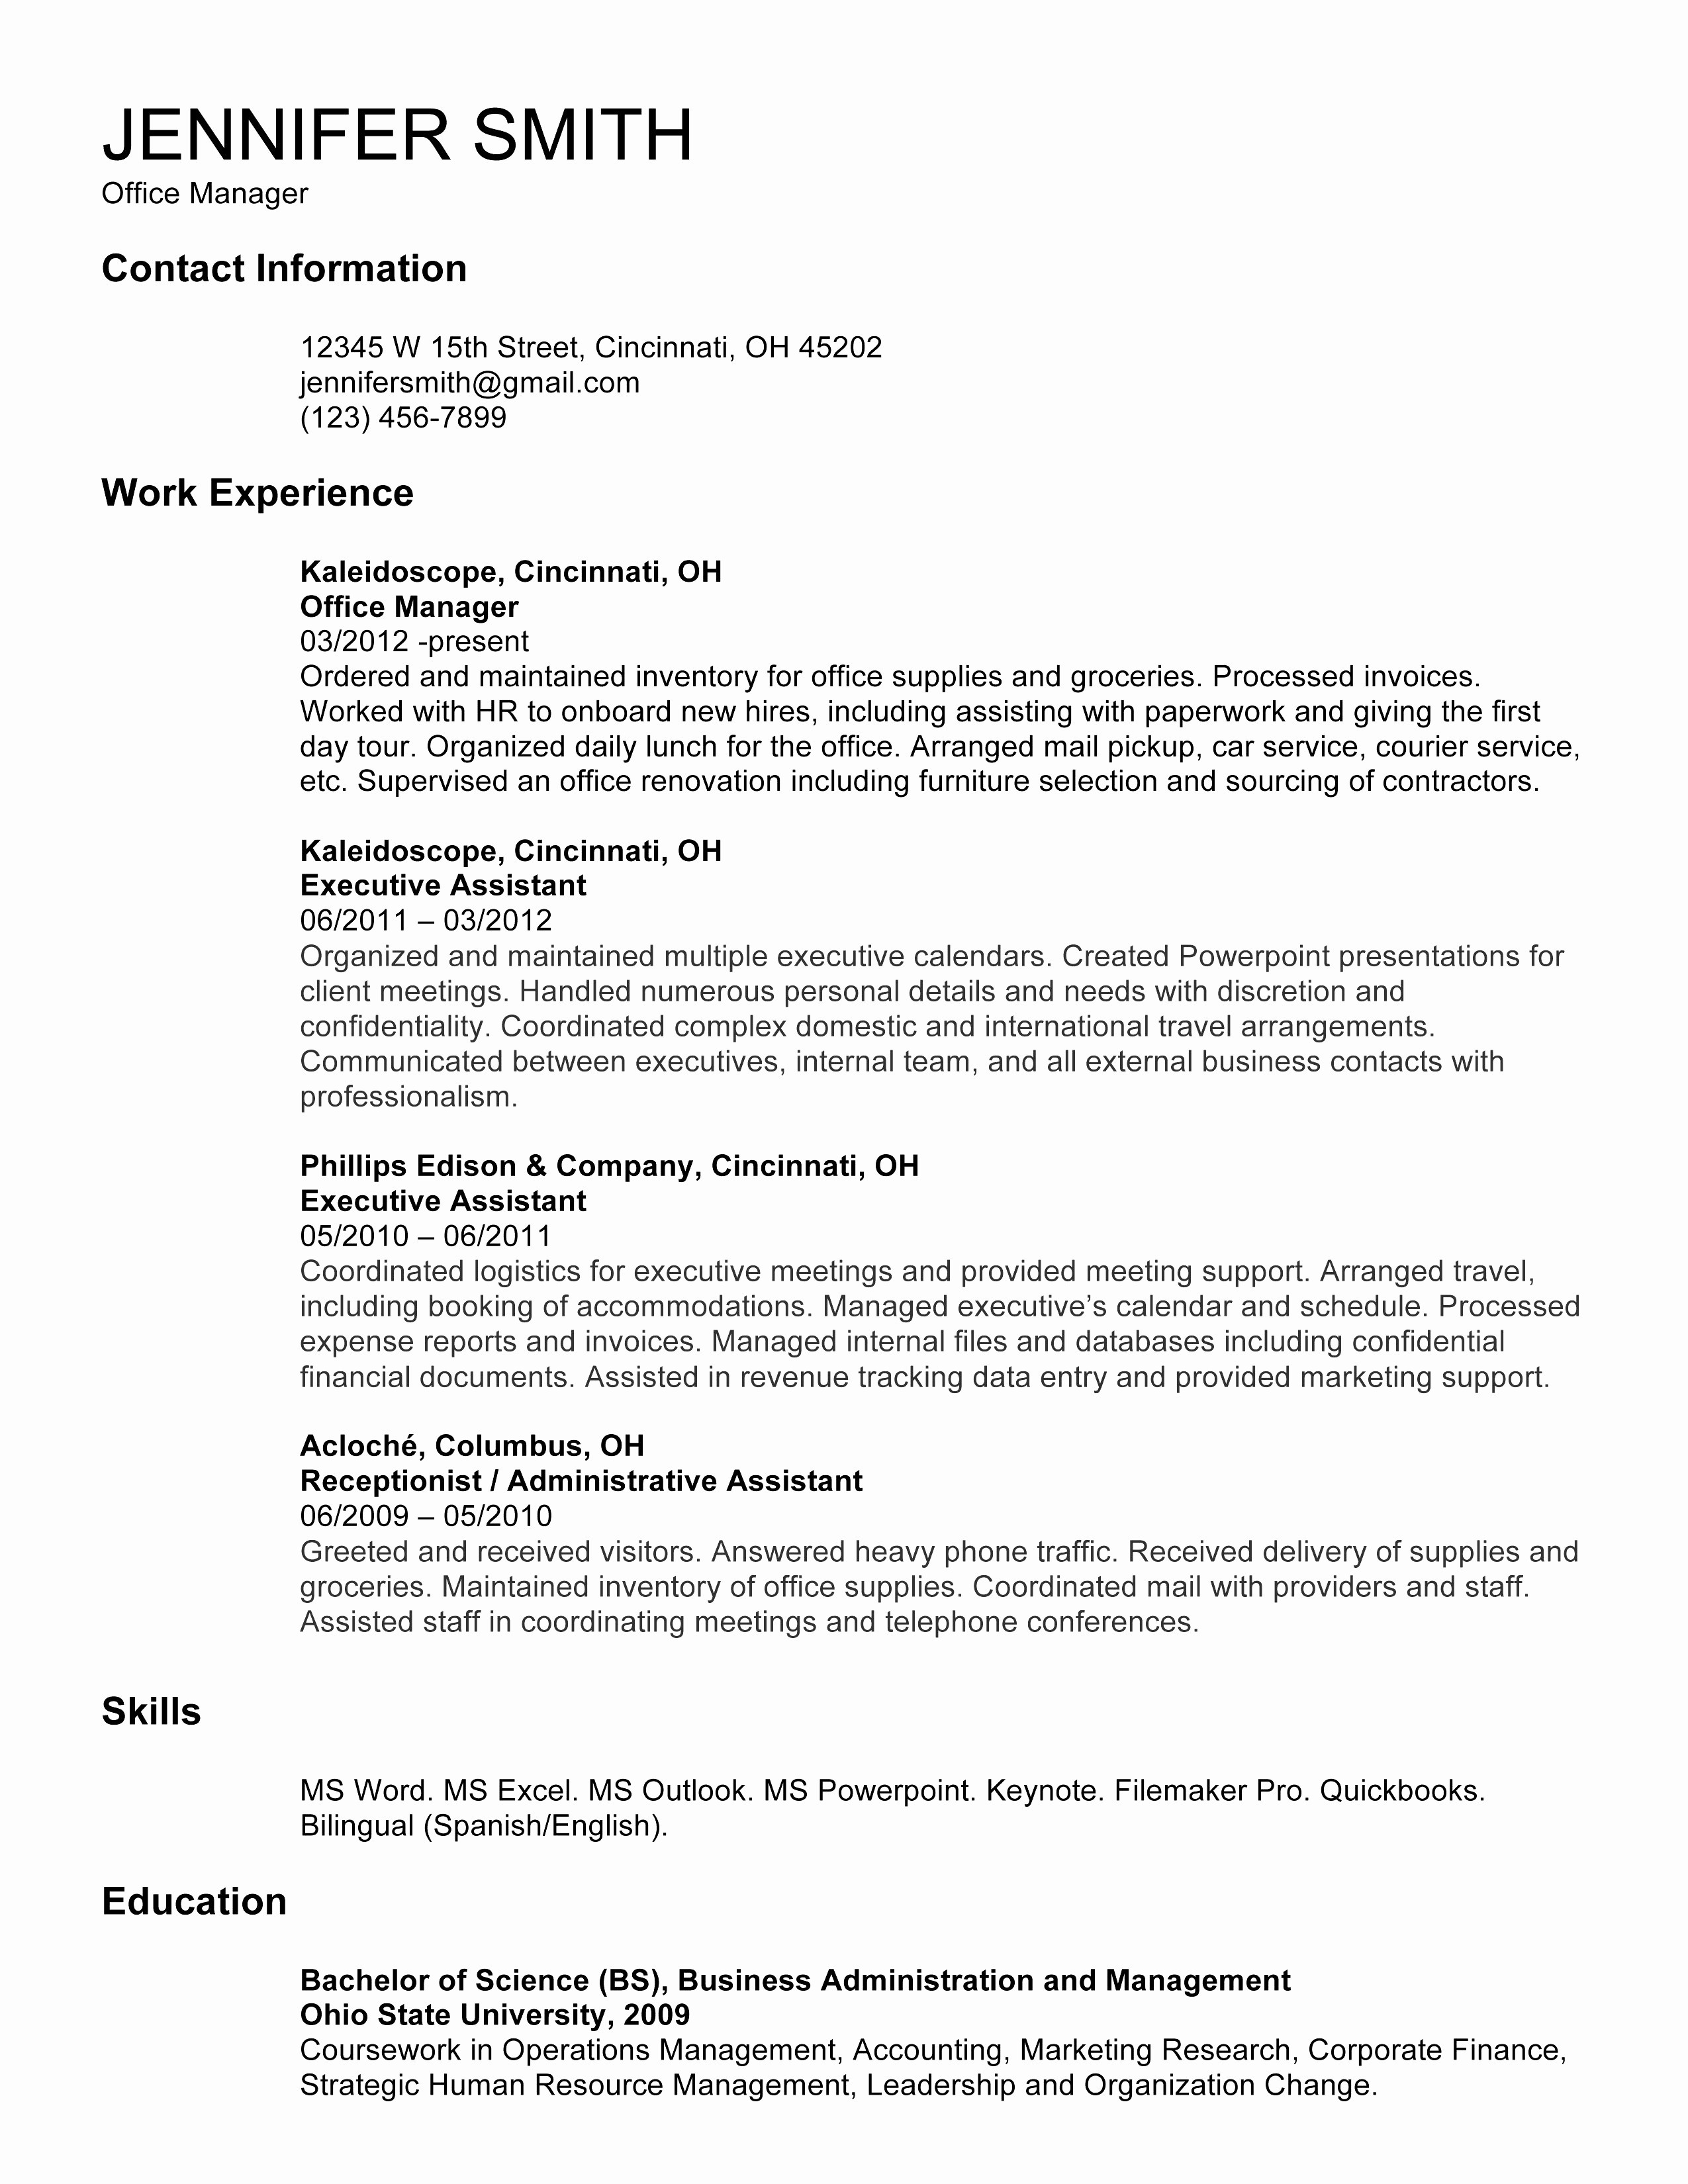 Academic Resume Template for Grad School - 21 Graduate School Resume Examples